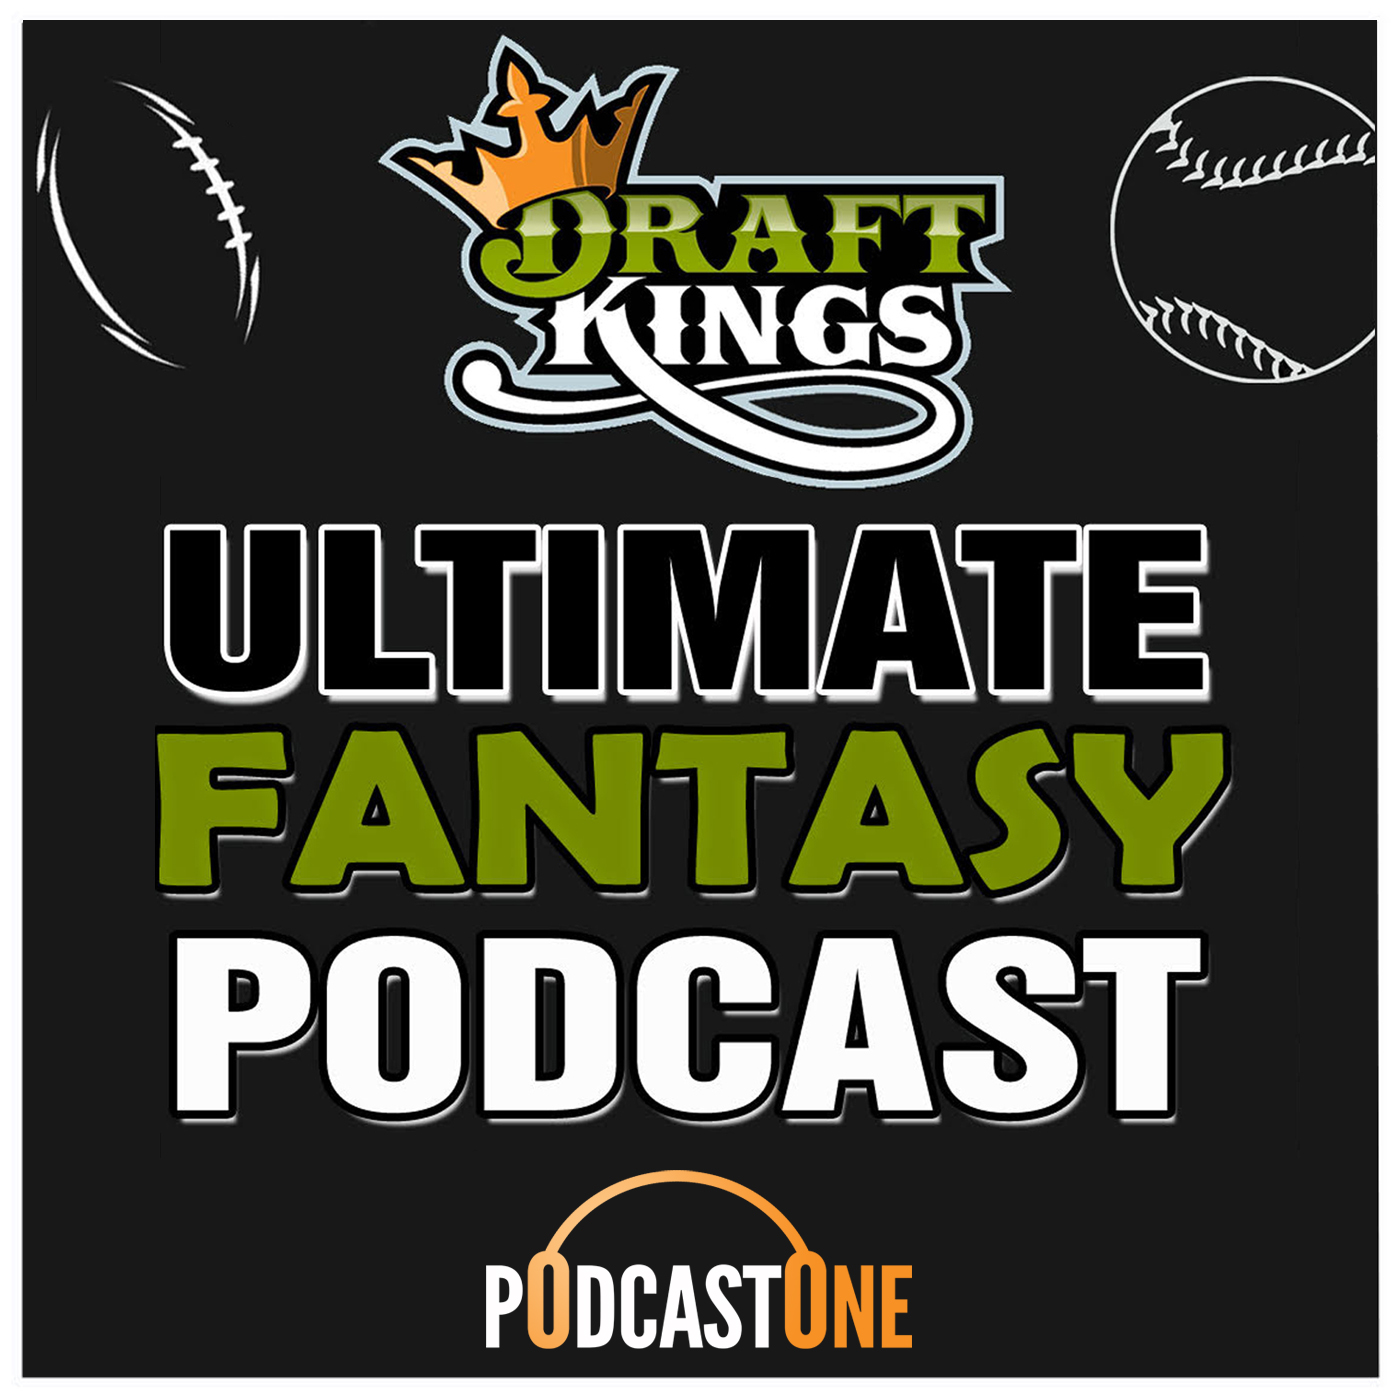 Draftkings Ultimate Fantasy Podcast